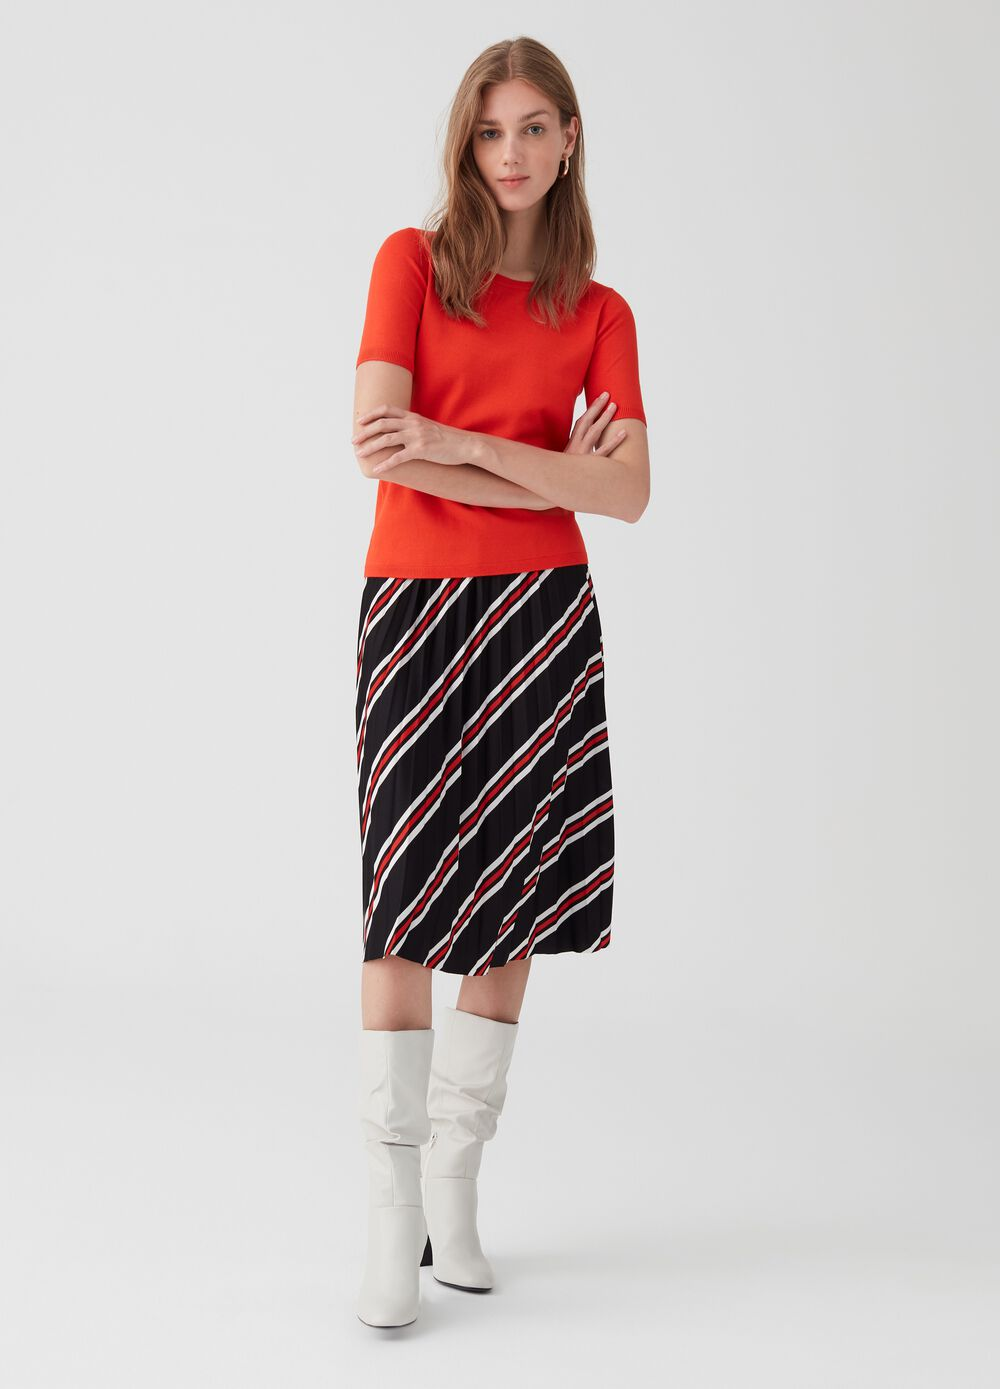 Patterned full skirt with pleats